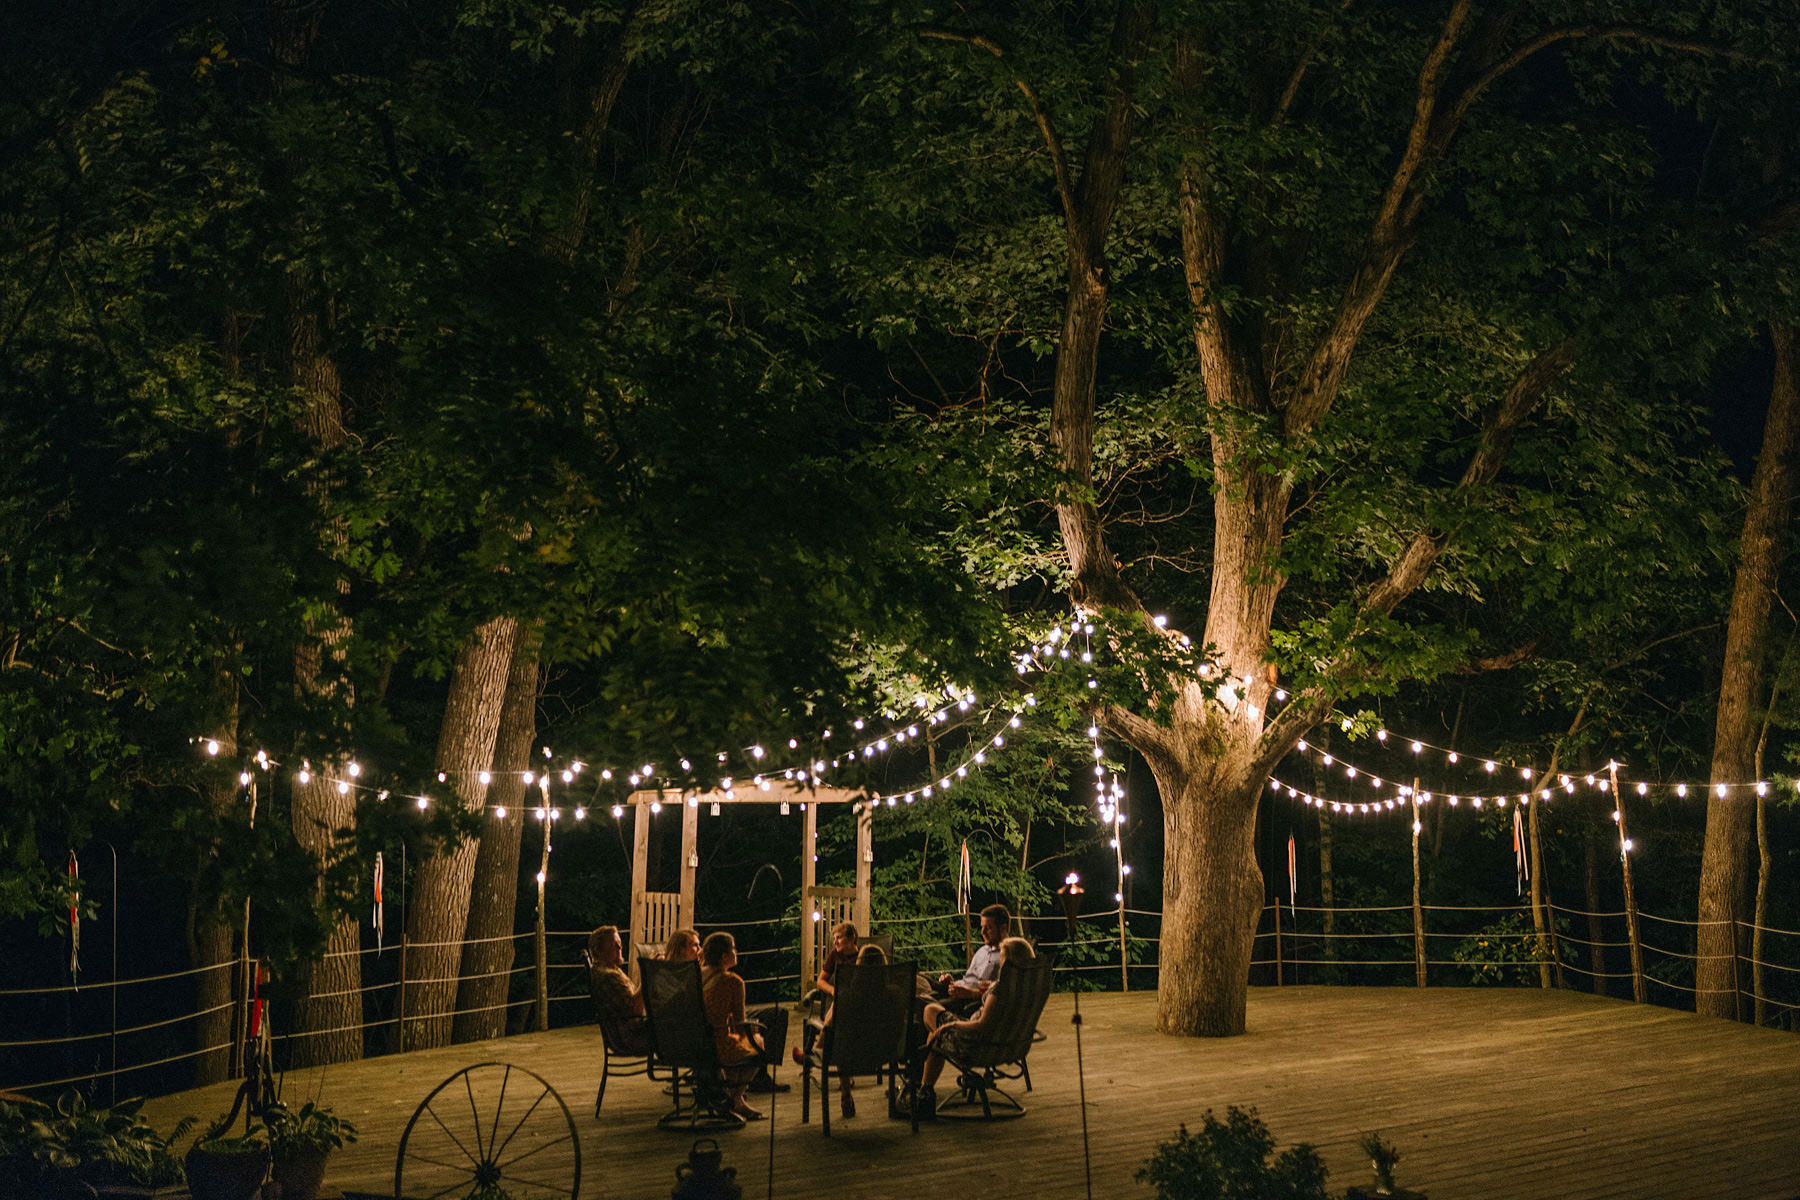 282_Blackberry Creek Outdoor Ozarks Wedding Springfield, Missouri_Kindling Wedding Photography.JPG